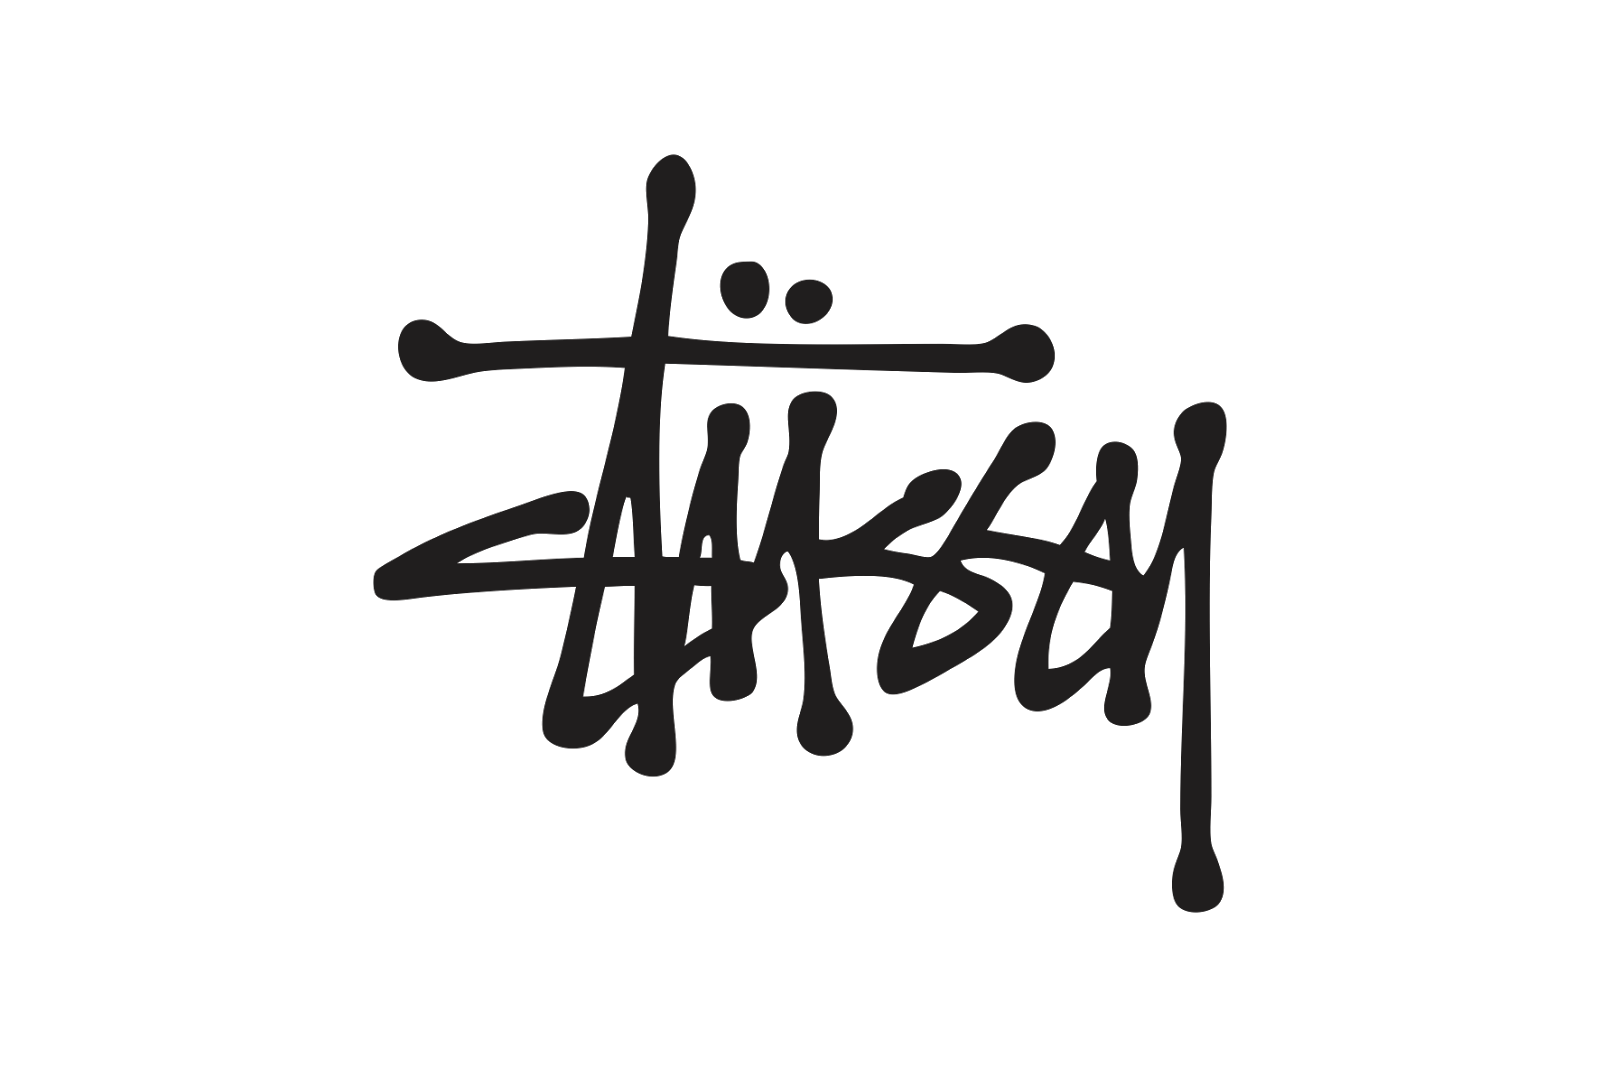 Stussy Hd Wallpaper Stussy Logo Stussy Symbol Meaning History And Evolution